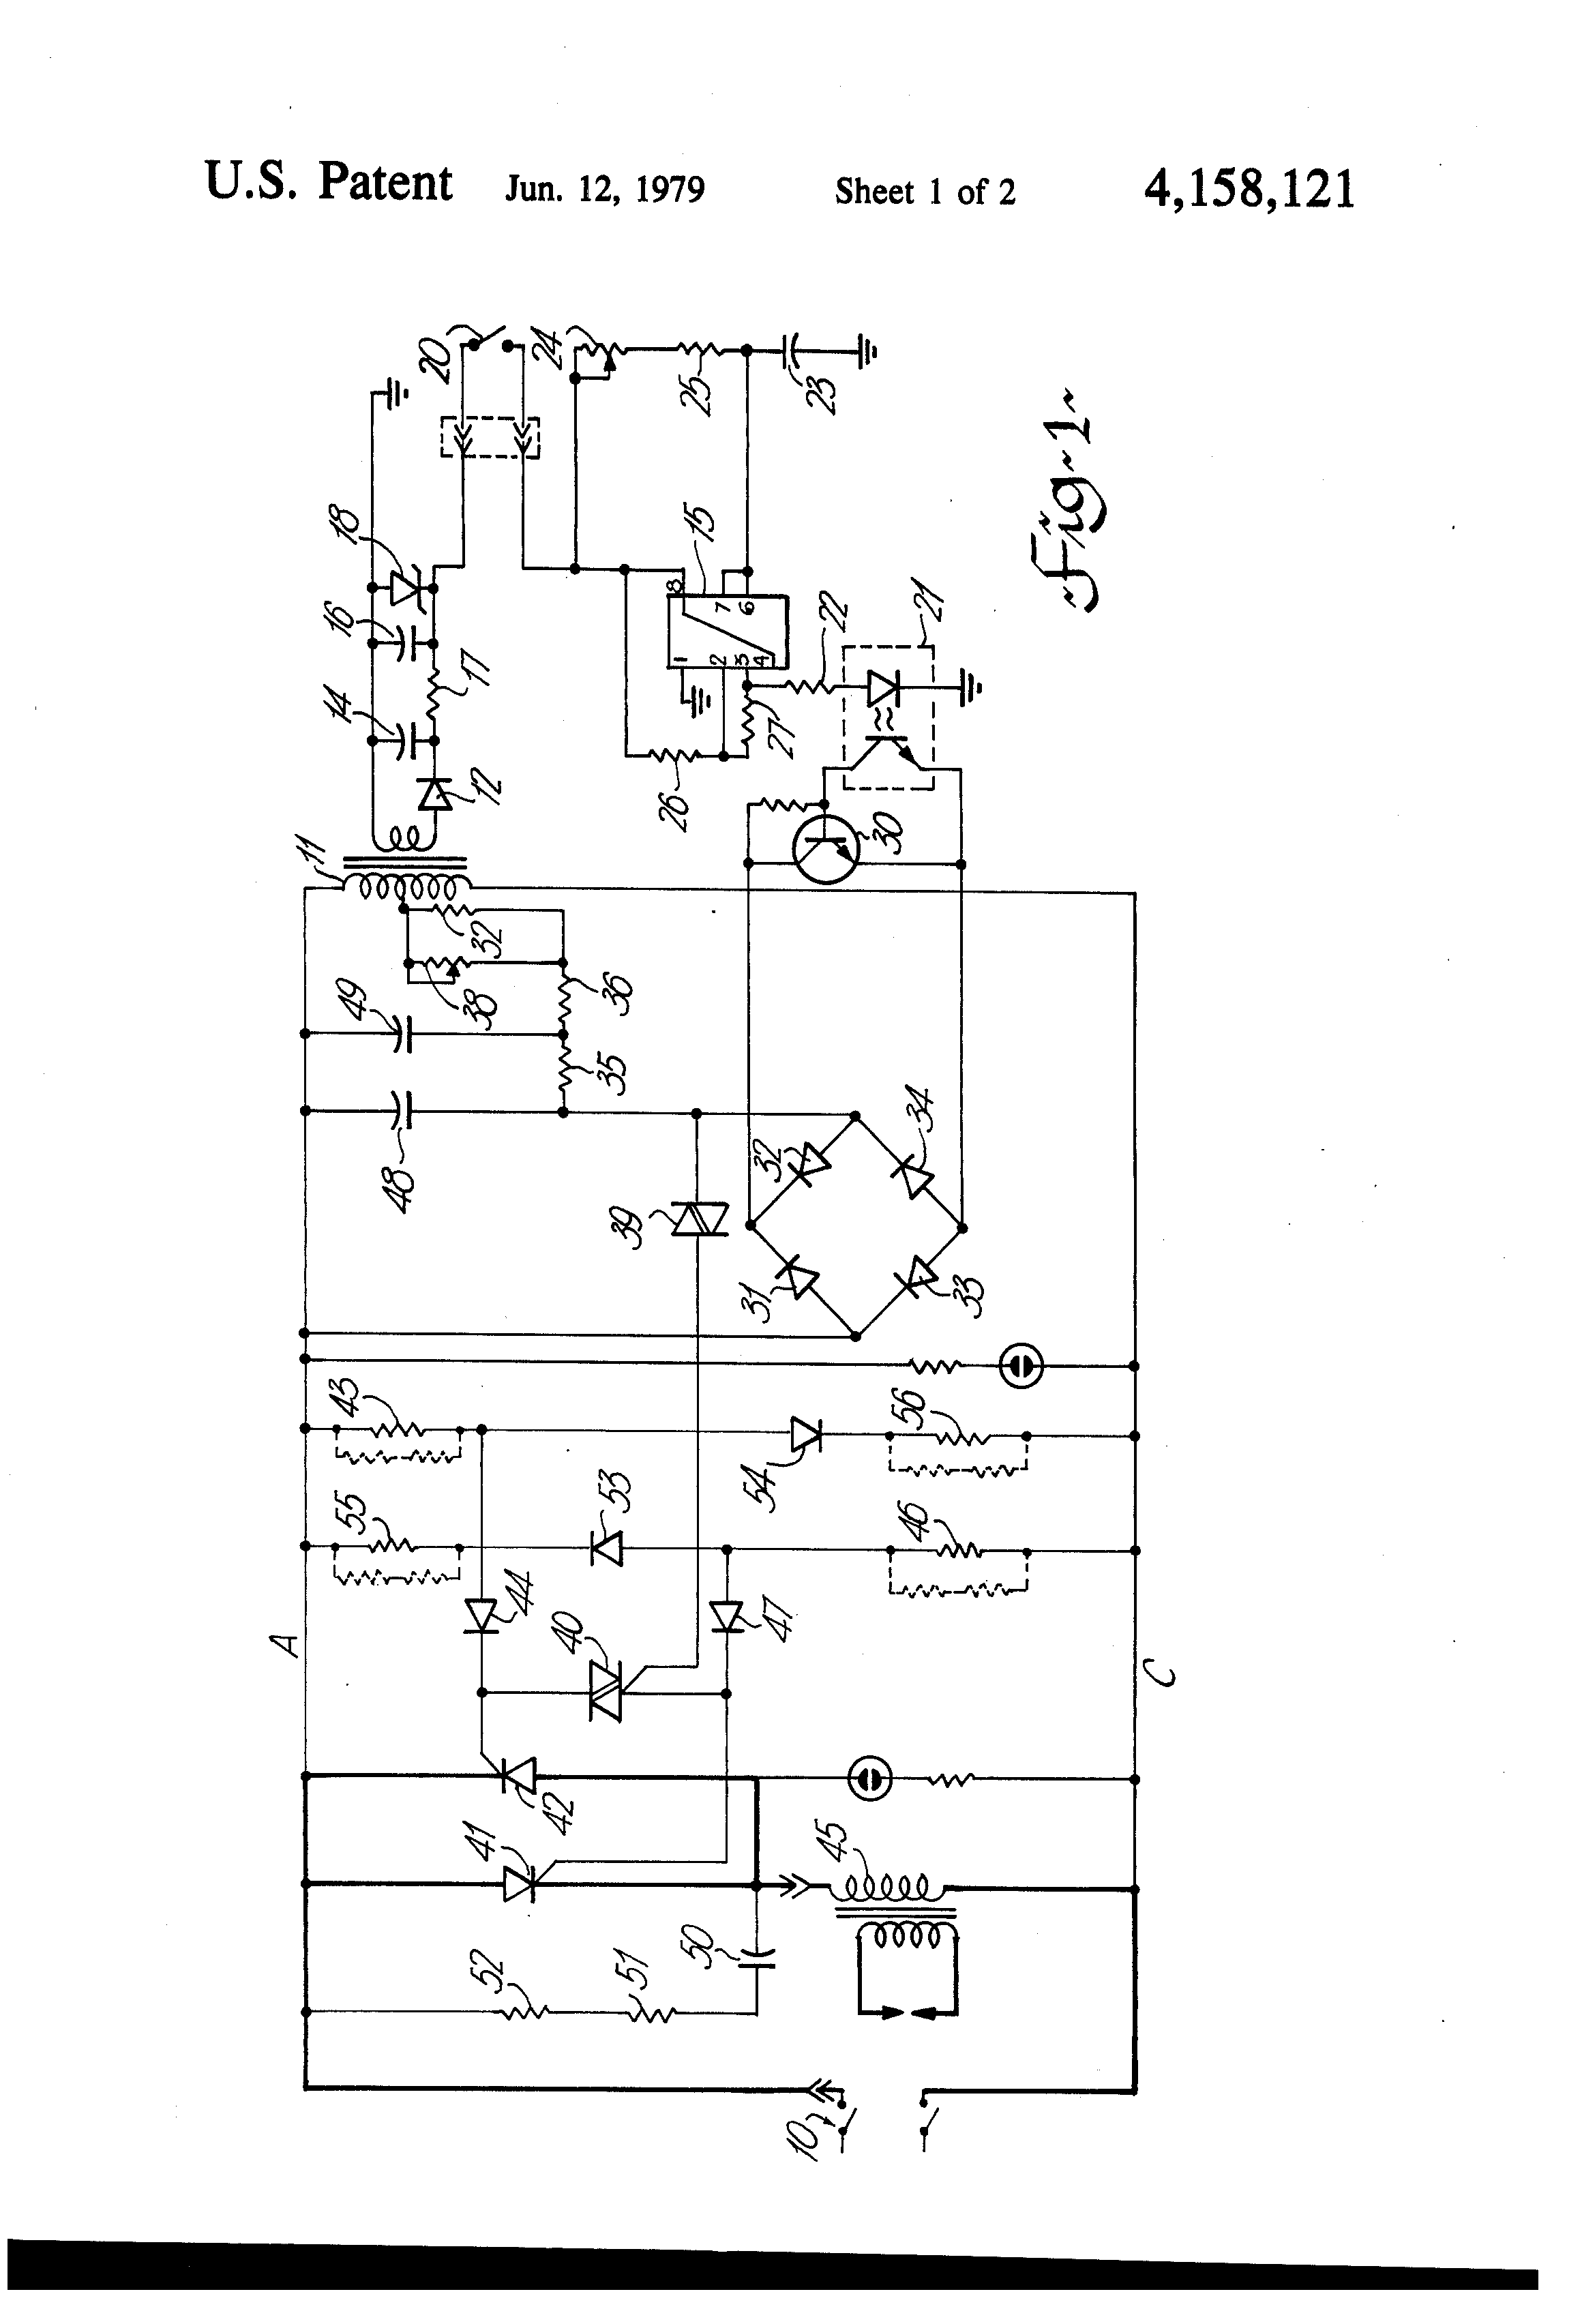 spot welder wiring diagram glock 17 parts welding 27 images